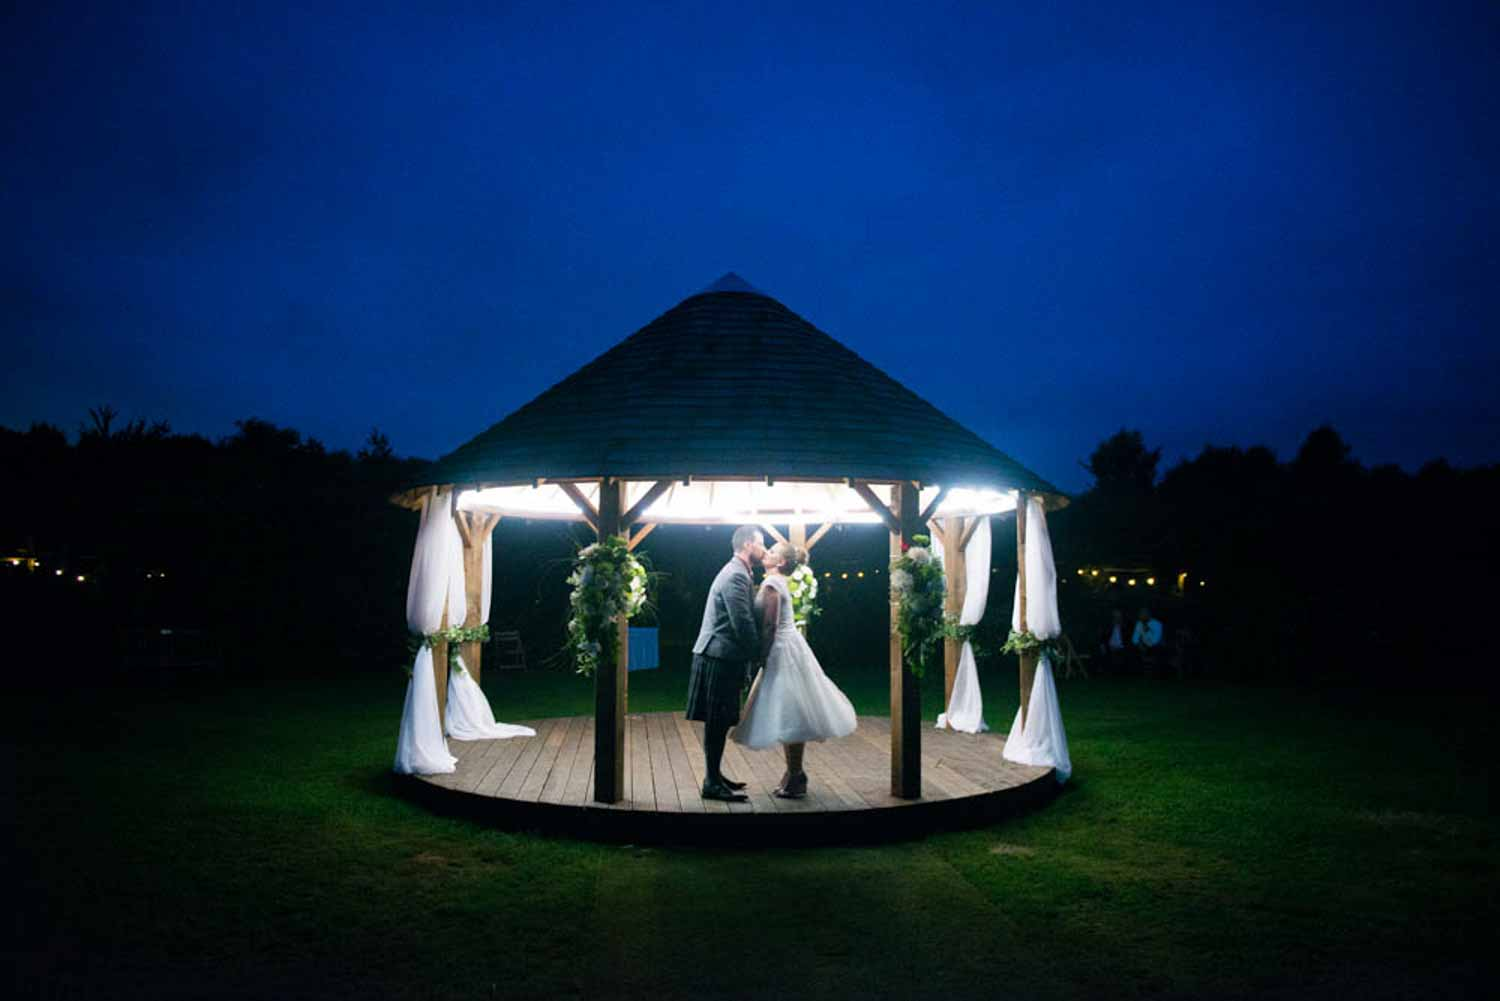 STACEY STEPHEN WEDDING PHOTO THE GARDENS YALDING NIGHT